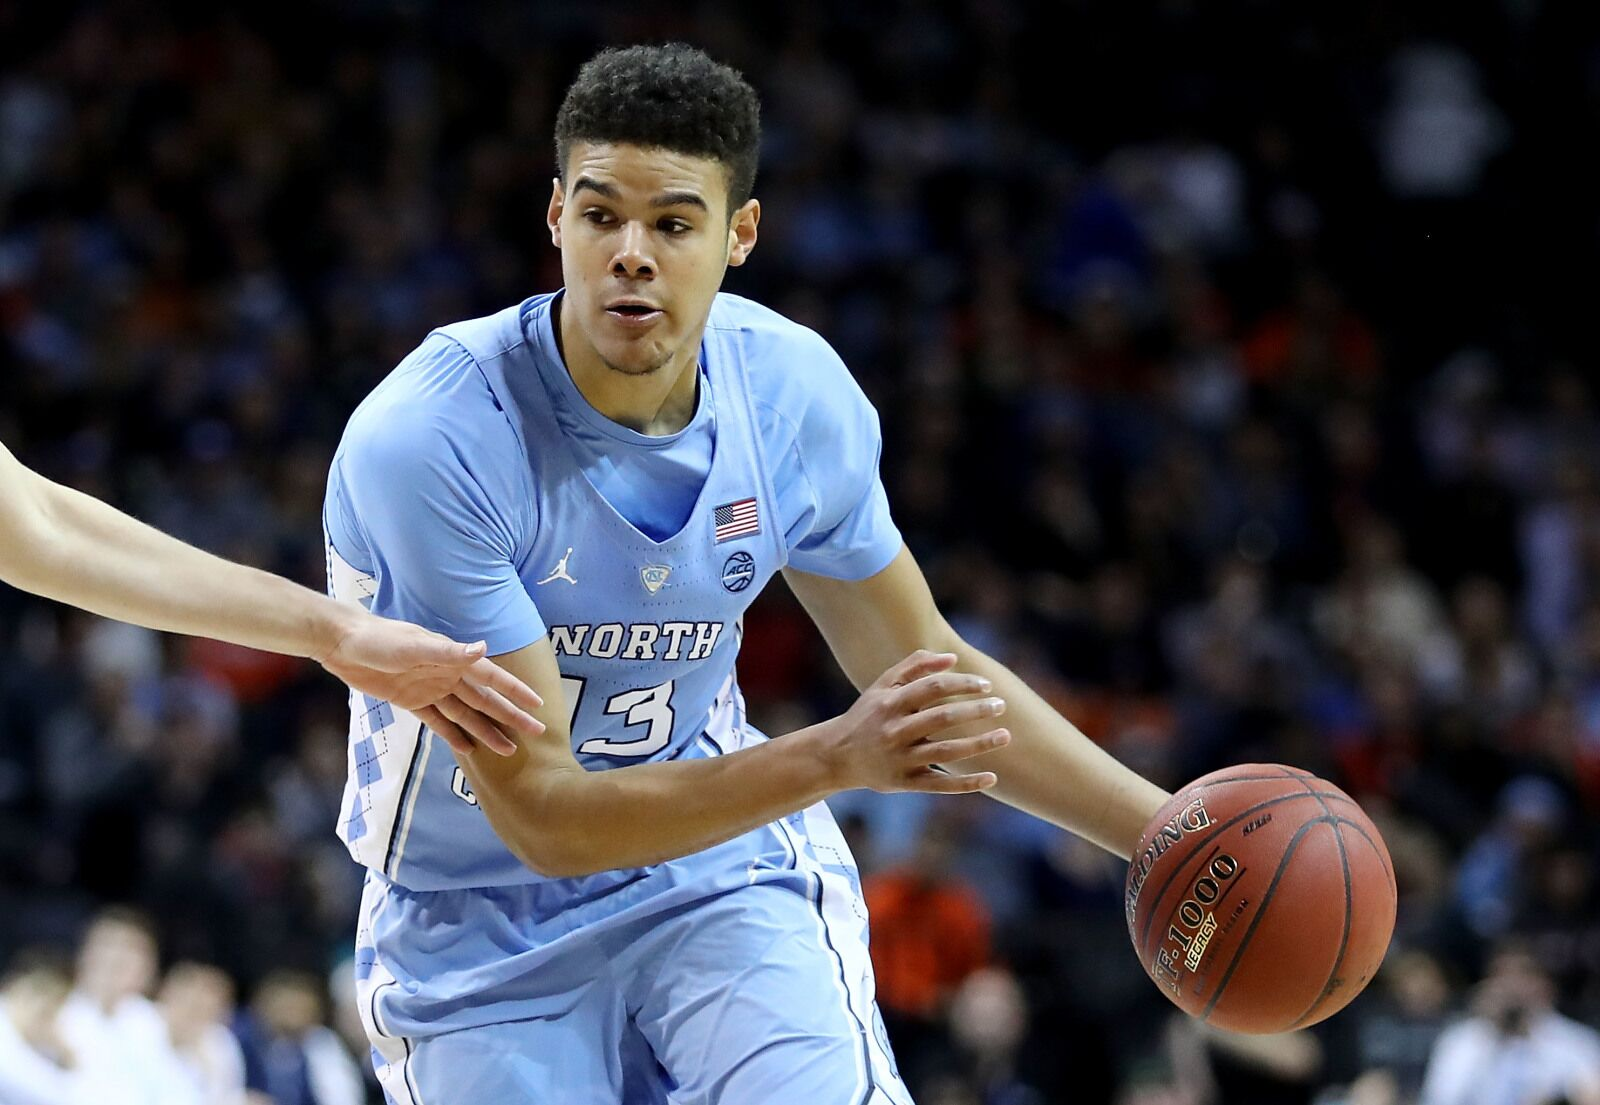 UNC Basketball: Analyzing Cam Johnson's NBA draft stock